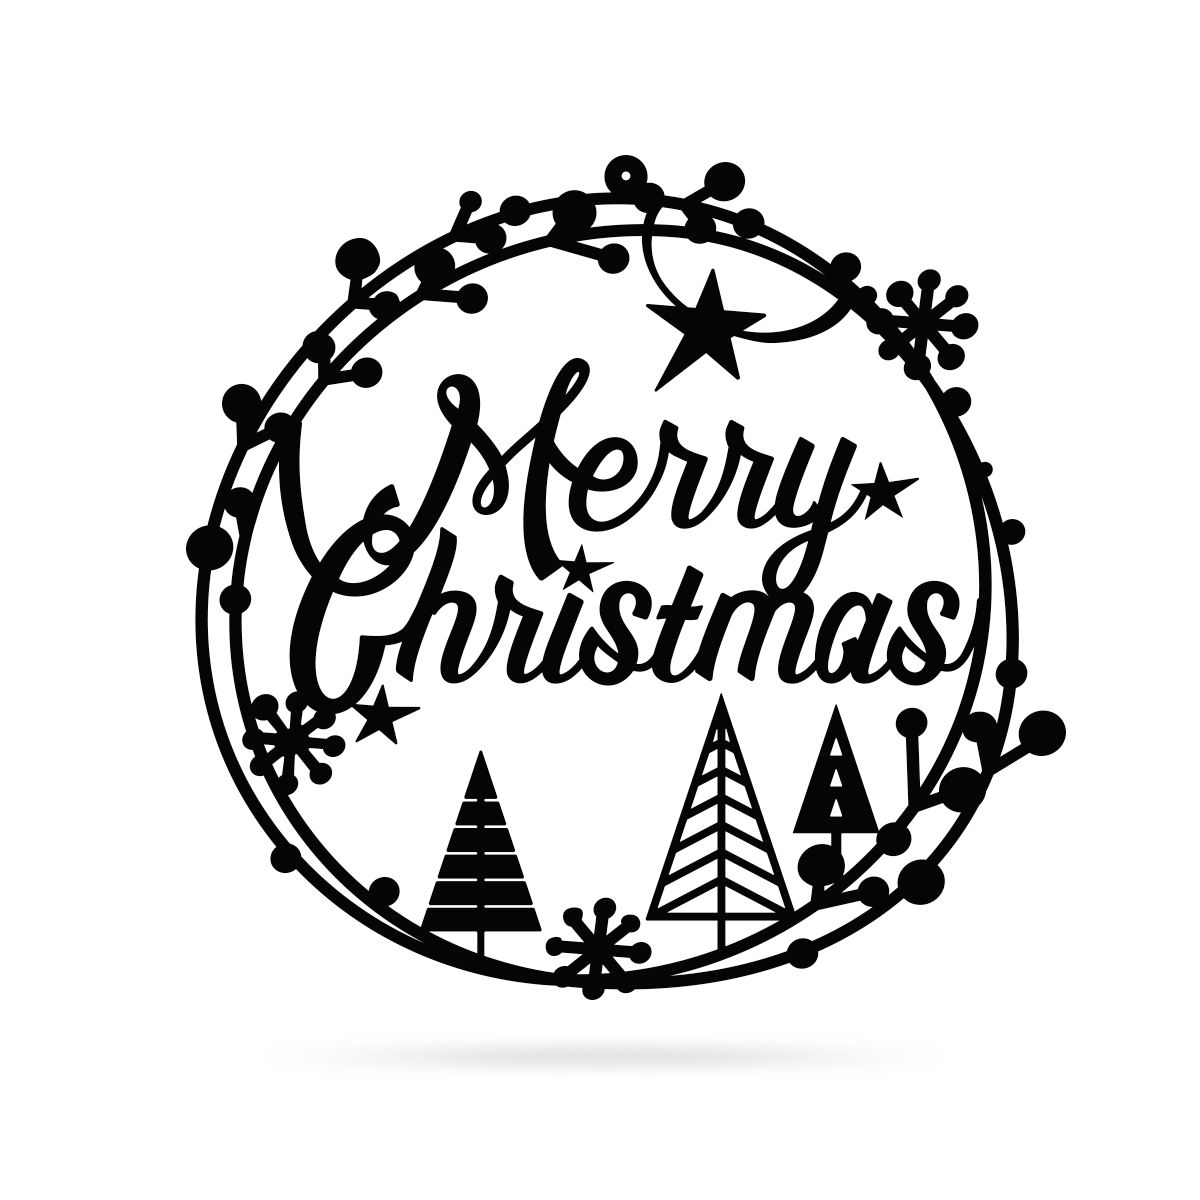 "Merry Christmas Holiday Steel Sign 16"" / Black / Merry Christmas Holiday Steel Sign - RealSteel Center"